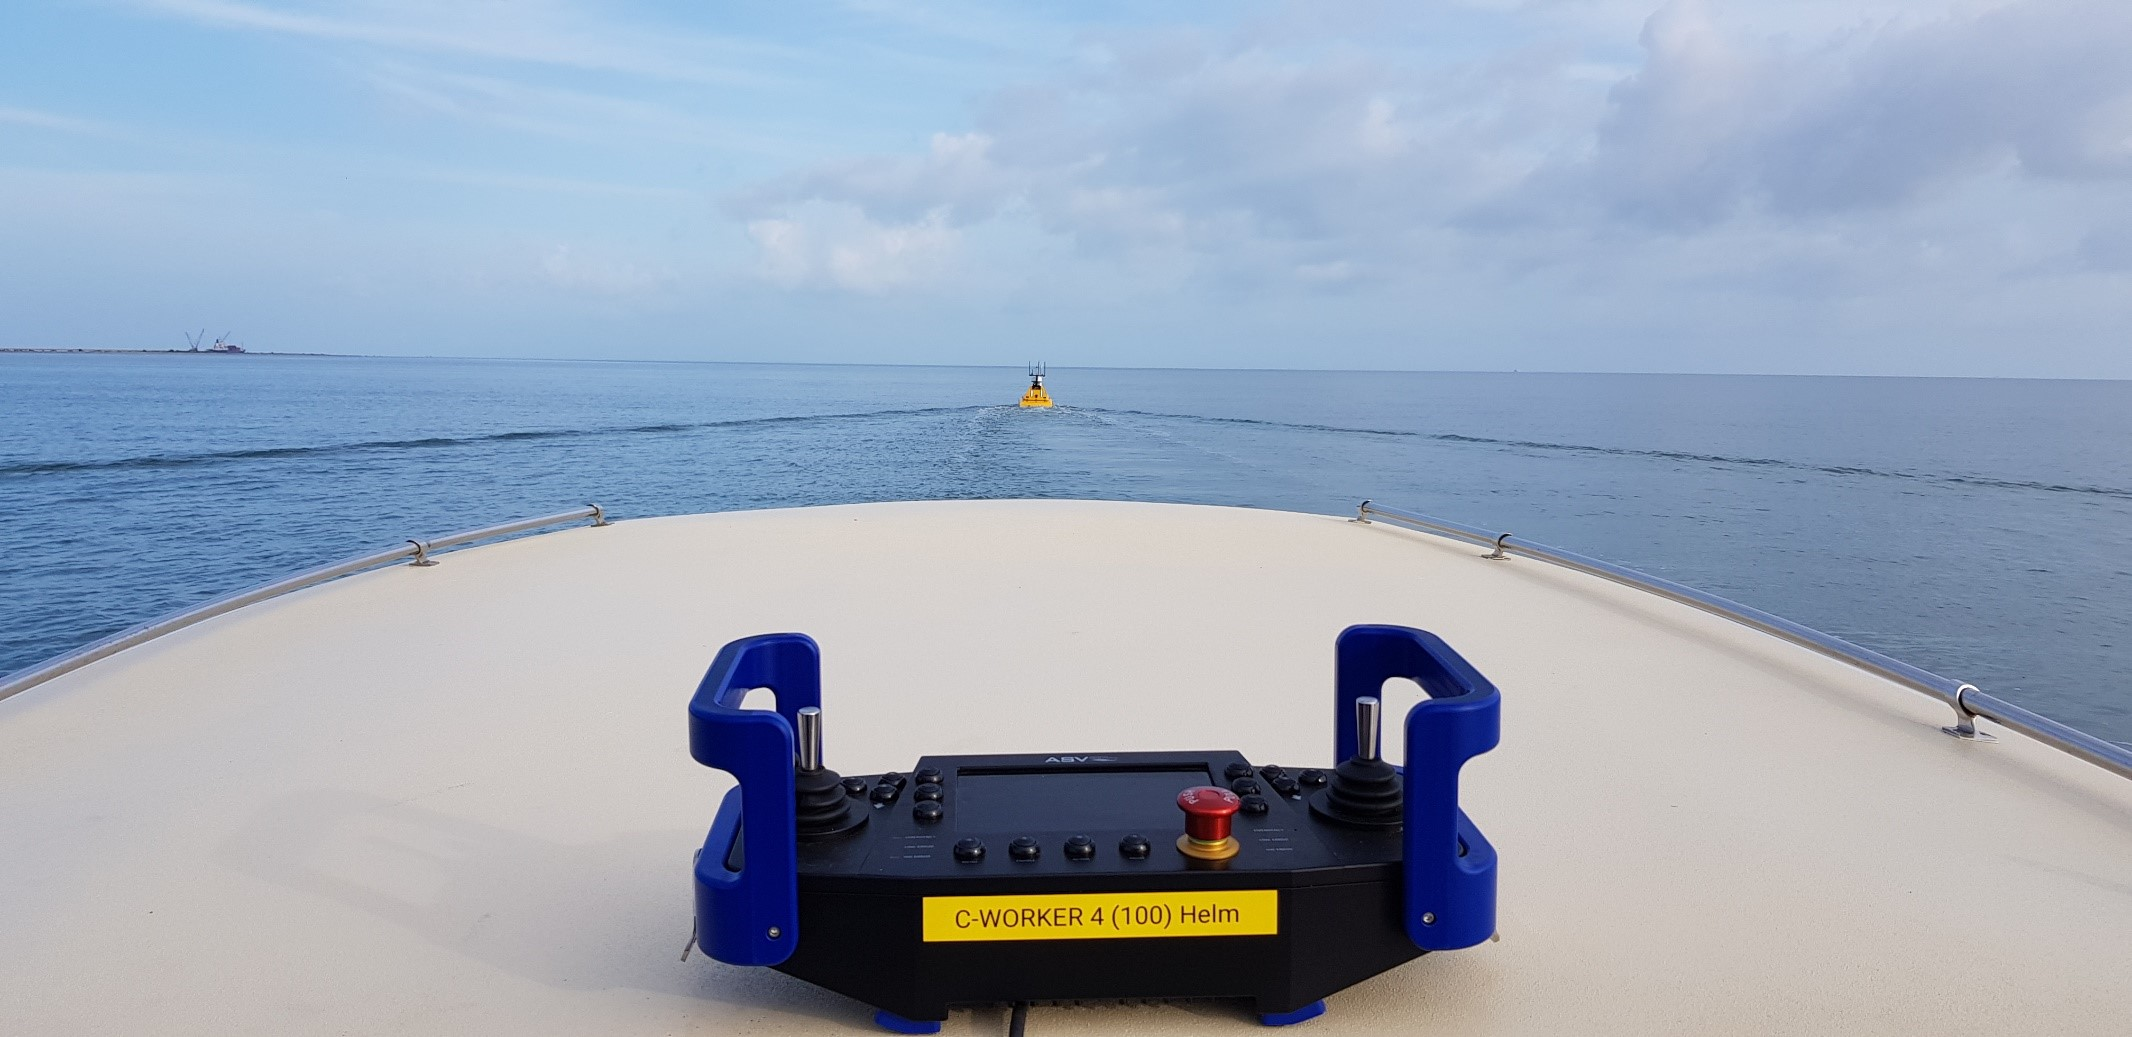 C-worker 4 starting a day's surveying from Belize Marina in 2019